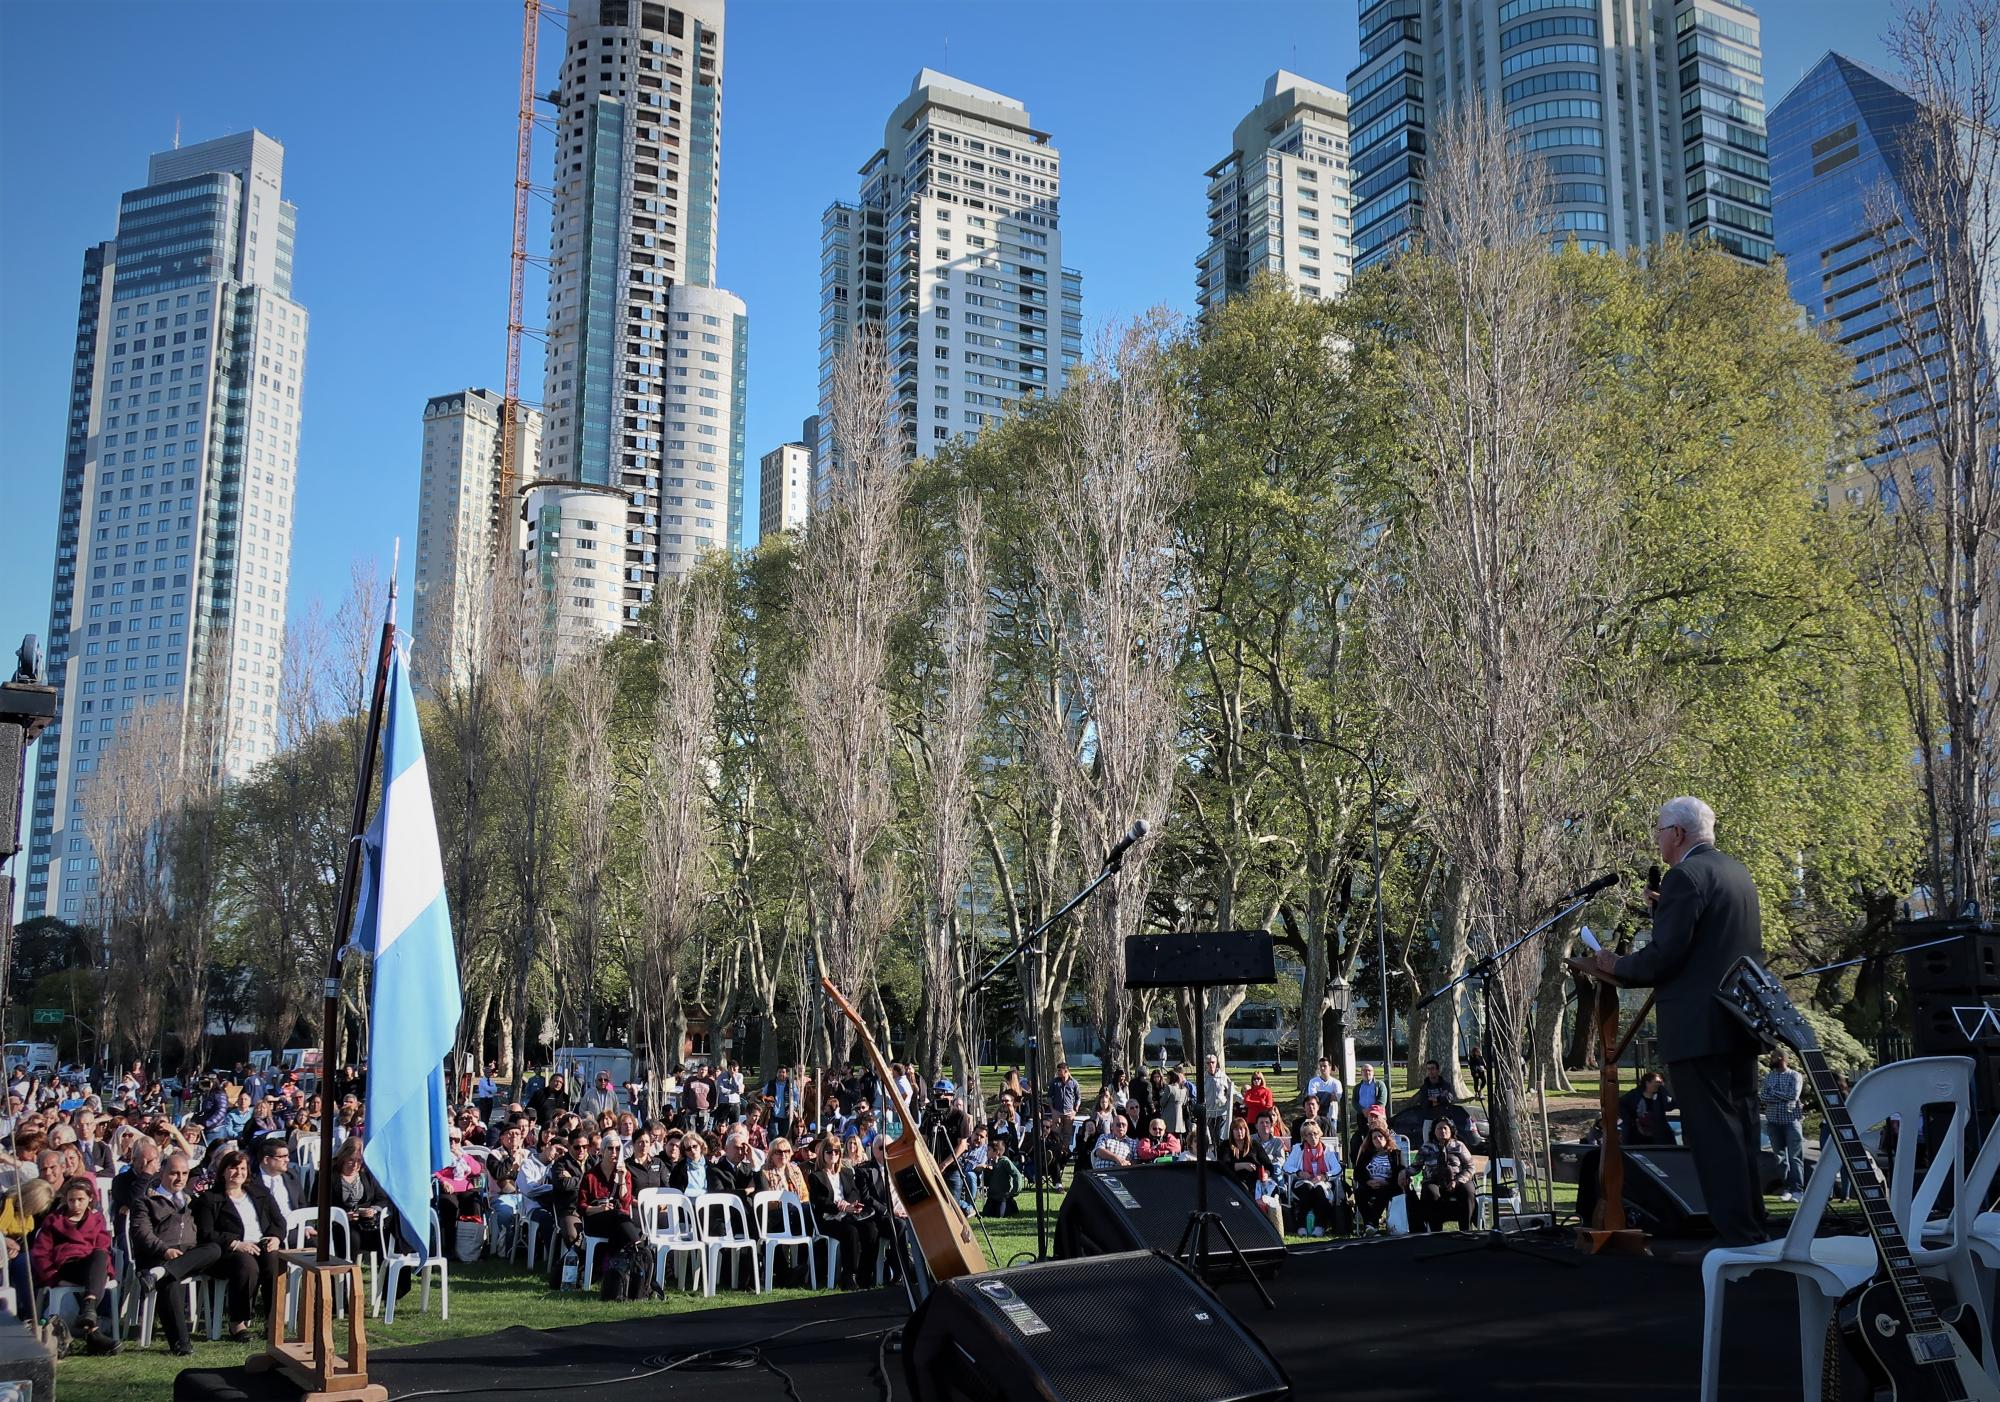 Mario Snyder speaks to several hundred Mennonites from across Argentina at the outdoor festivities marking the 100th anniversary of Mennonite witness in the country. The celebration was at Porto Madero, where the first missionaries landed in 1917. Photo: J. Nelson Kraybill.